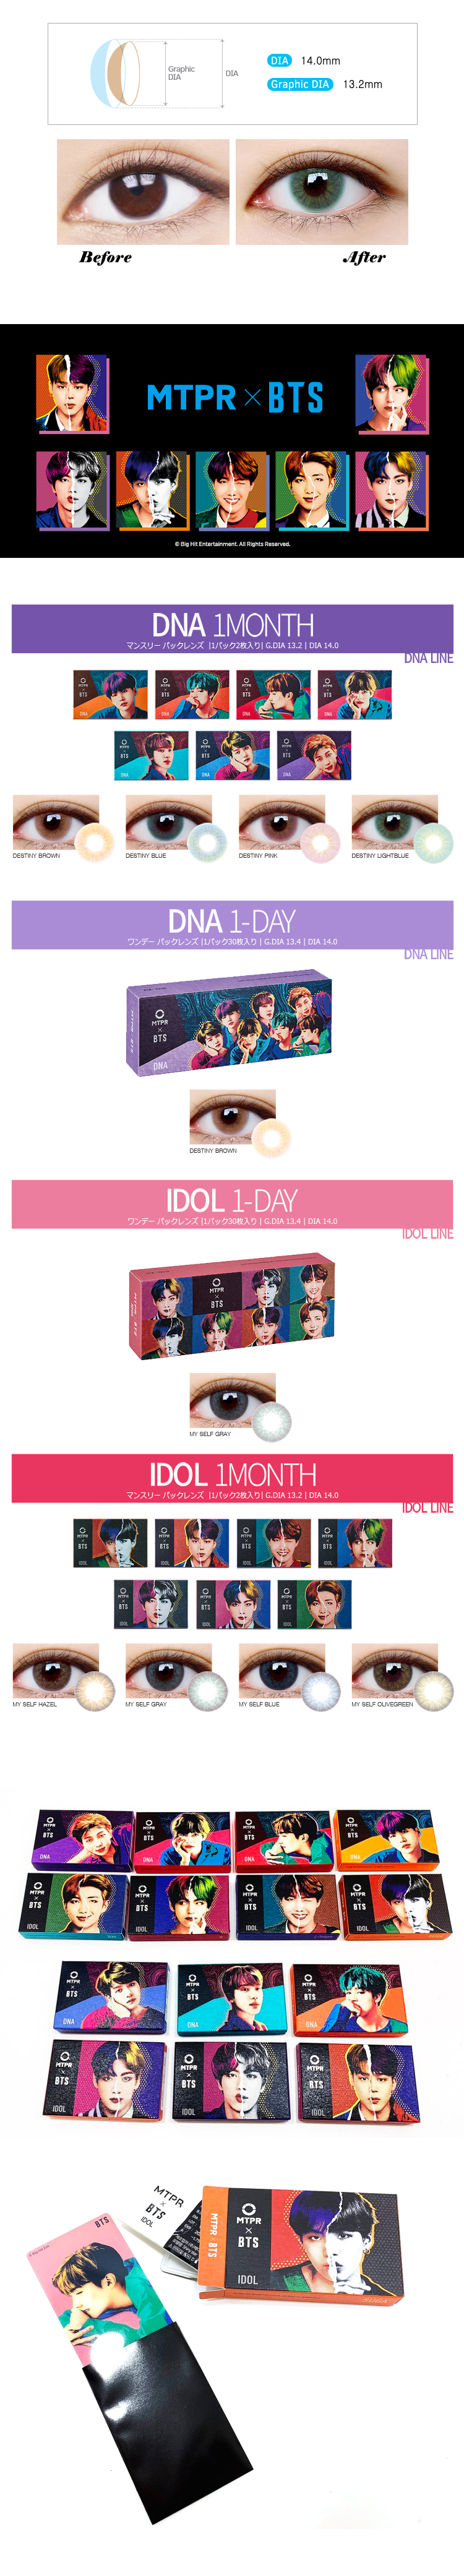 [1ヶ月] BTS DNA デスティニー マンスリー (BTS DNA 1MONTH DESTINY LIGHTBLUE) DIA 14.0mm [1箱2枚]